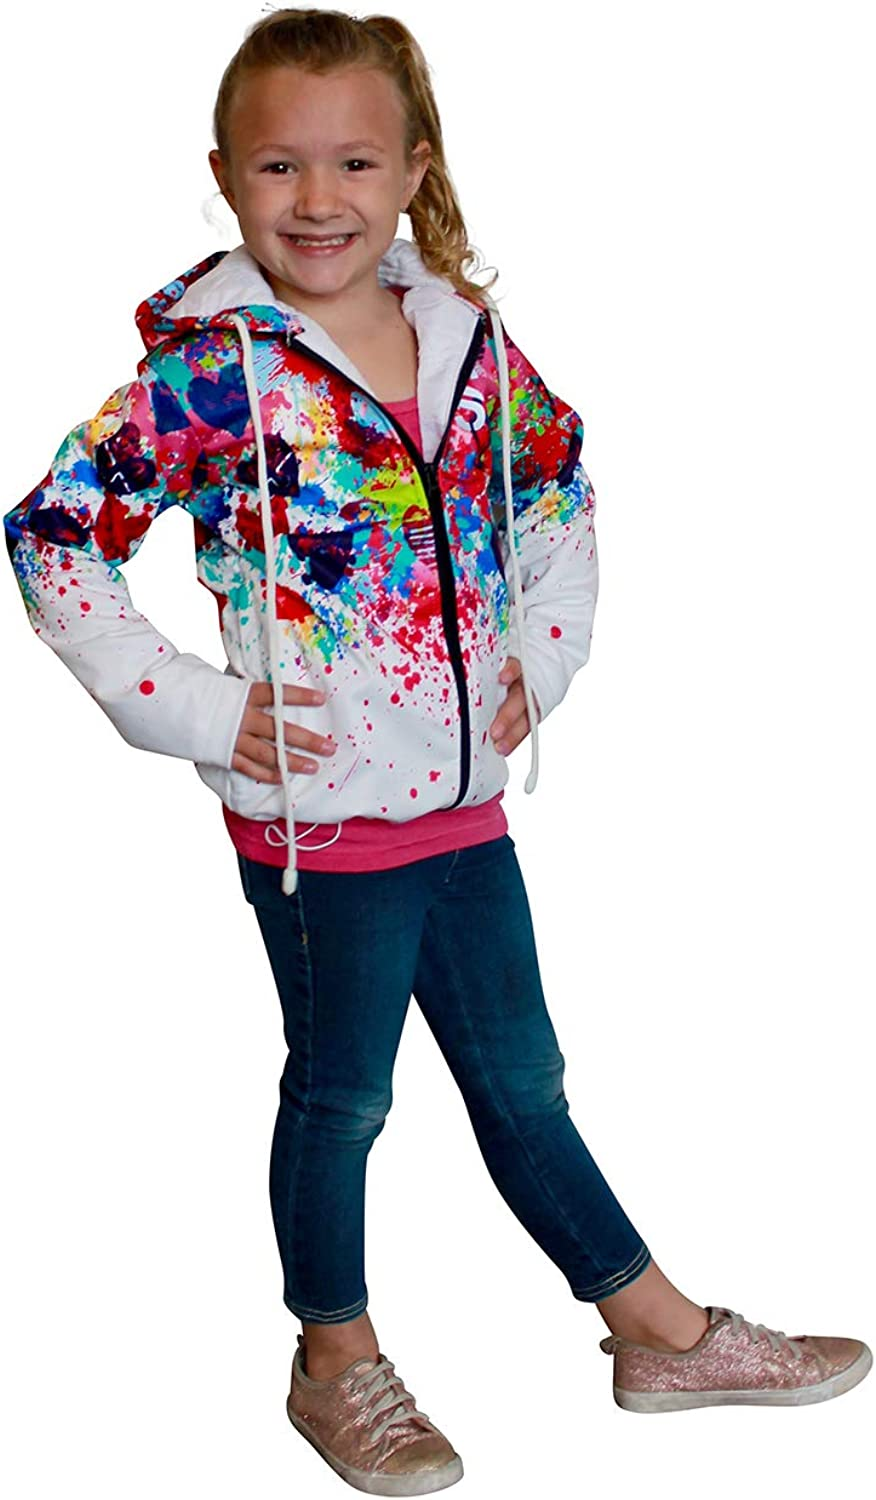 Swagger Girls Jacket Hooded Warm Jacket with Full Zipper for 8 and 9 Years Old Girls